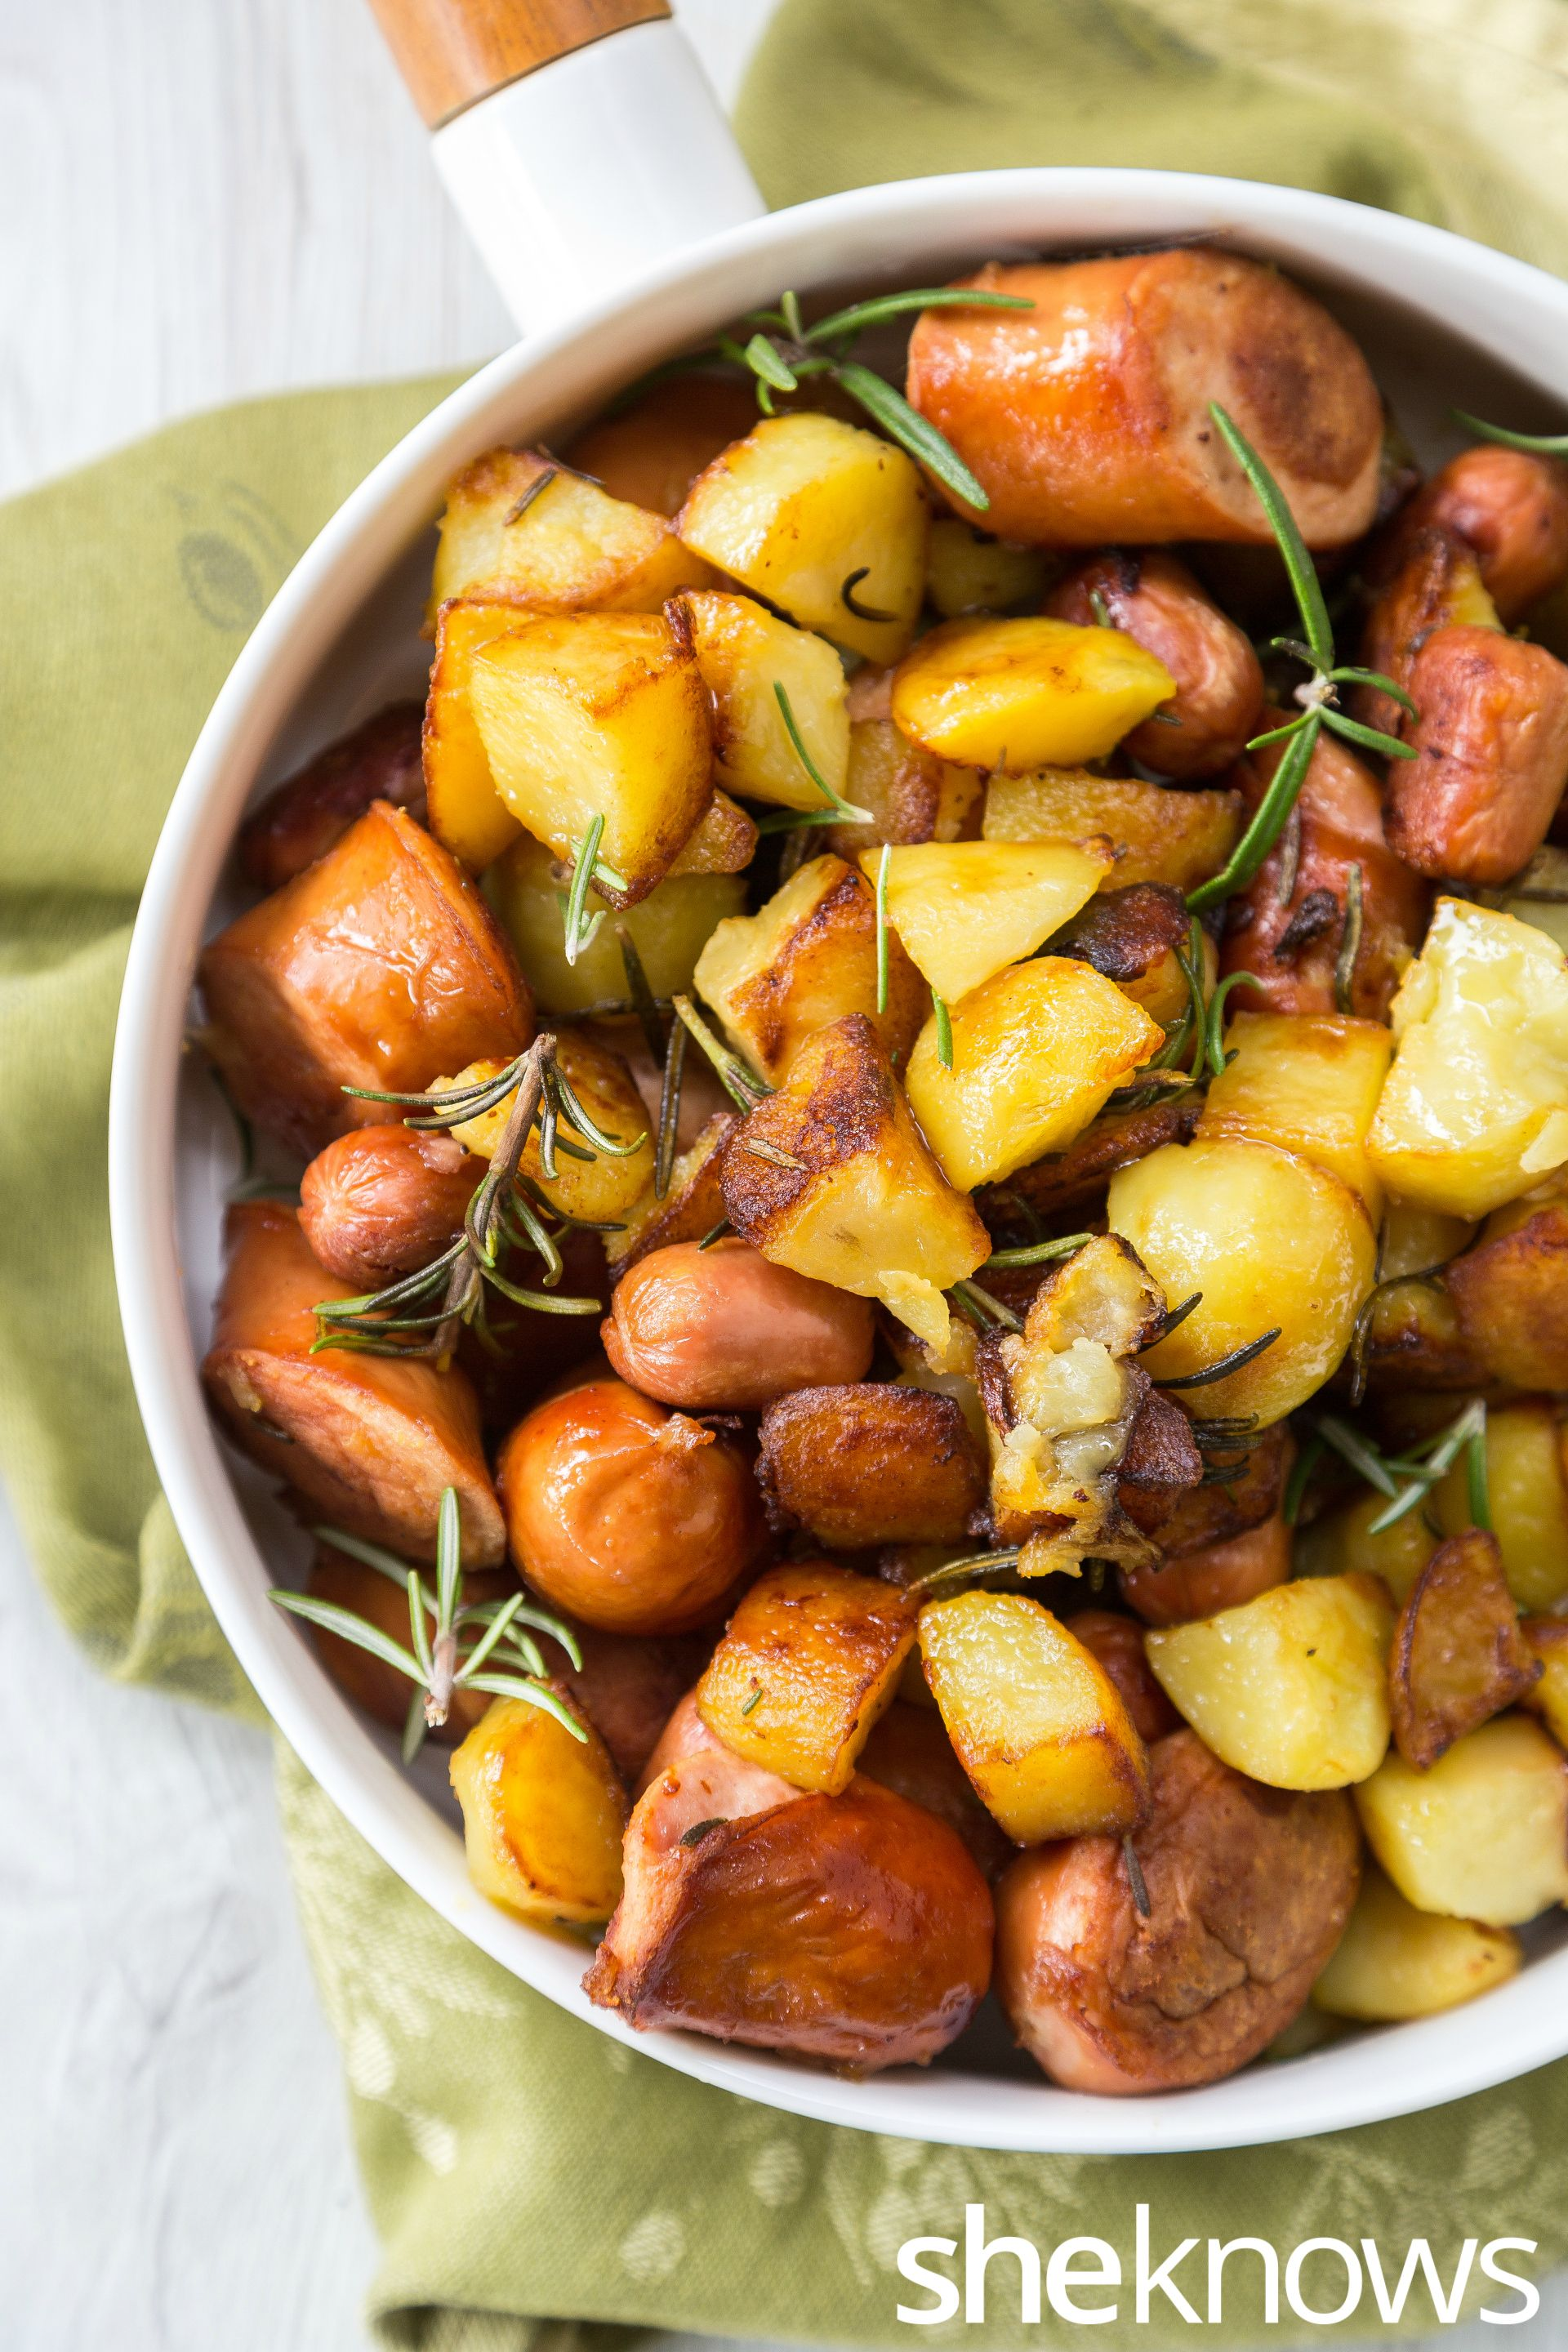 Crisp potatoes, hearty sausage and a hint of rosemary put this easy breakfast skillet over the top